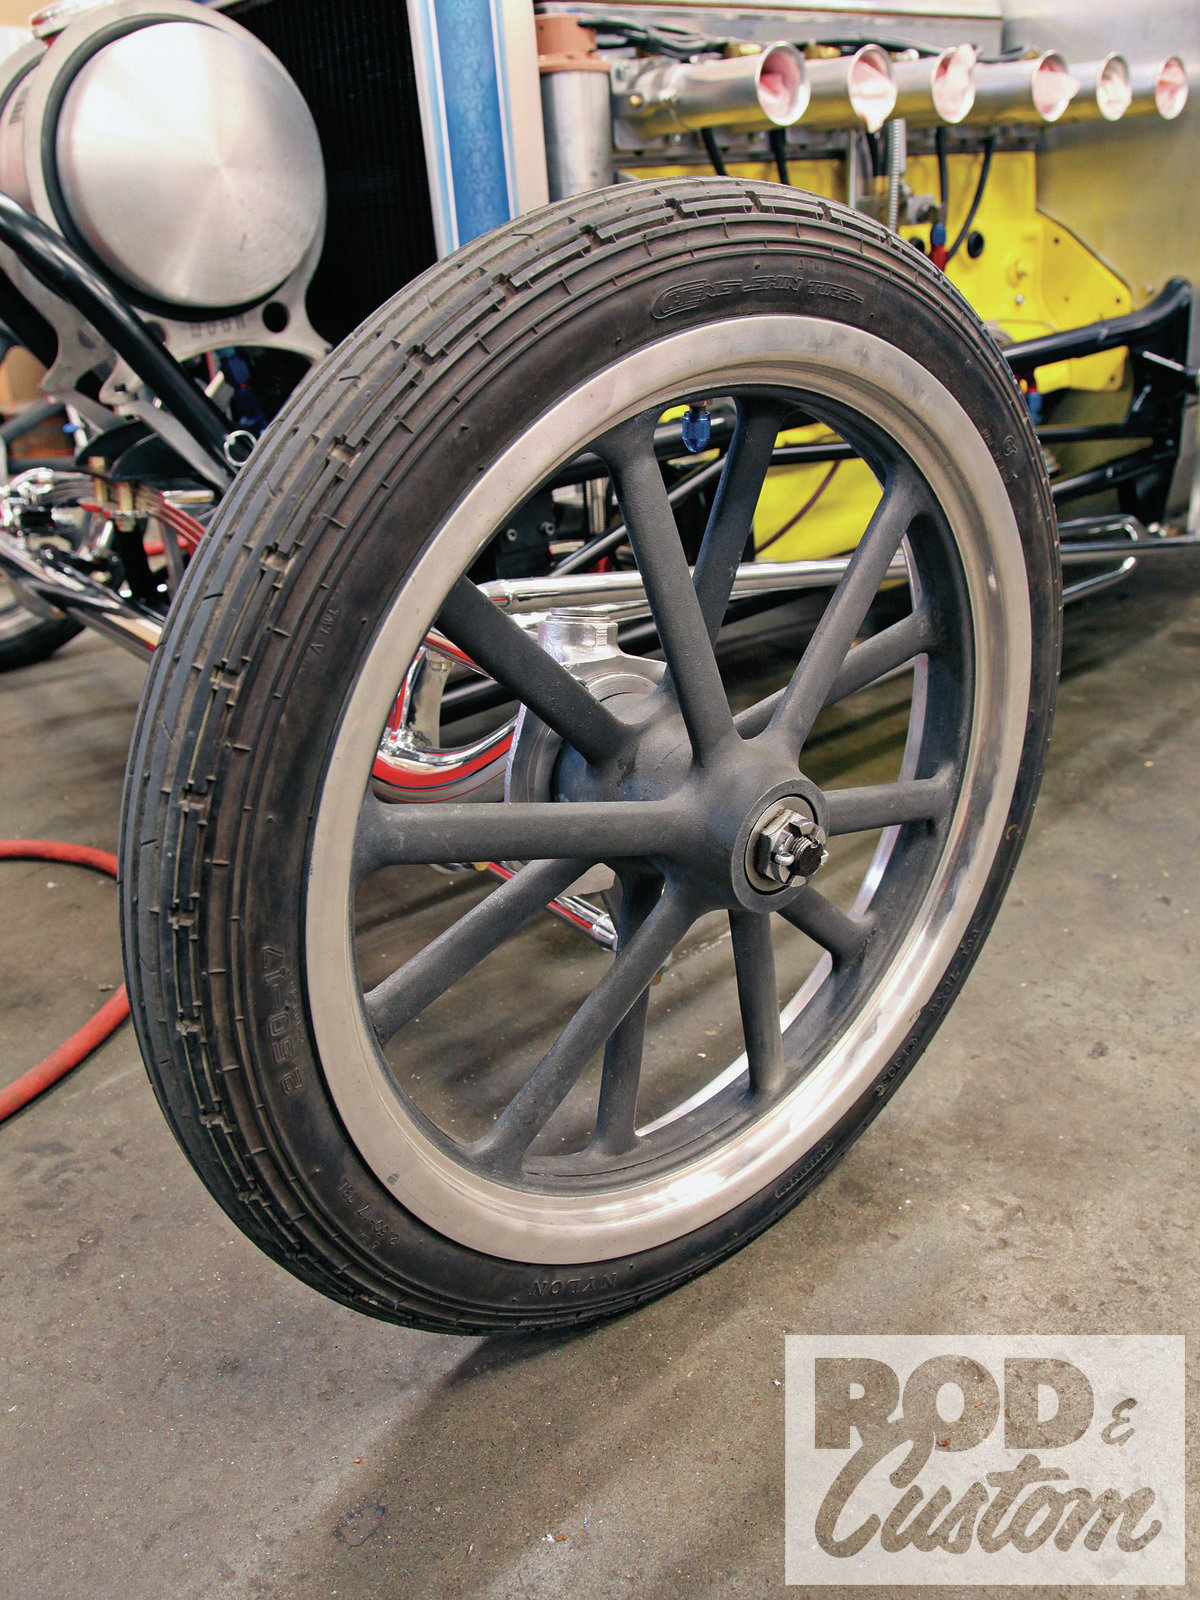 American's second iconic wheel is the 12-spoke. Spindle mounted and lacking provisions for brakes, it's drag-only equipment though later it caught on among T-bucketeers. The first was 15x3.5 but they grew to 18x2. All are magnesium. Several companies produce aluminum variations on this design.